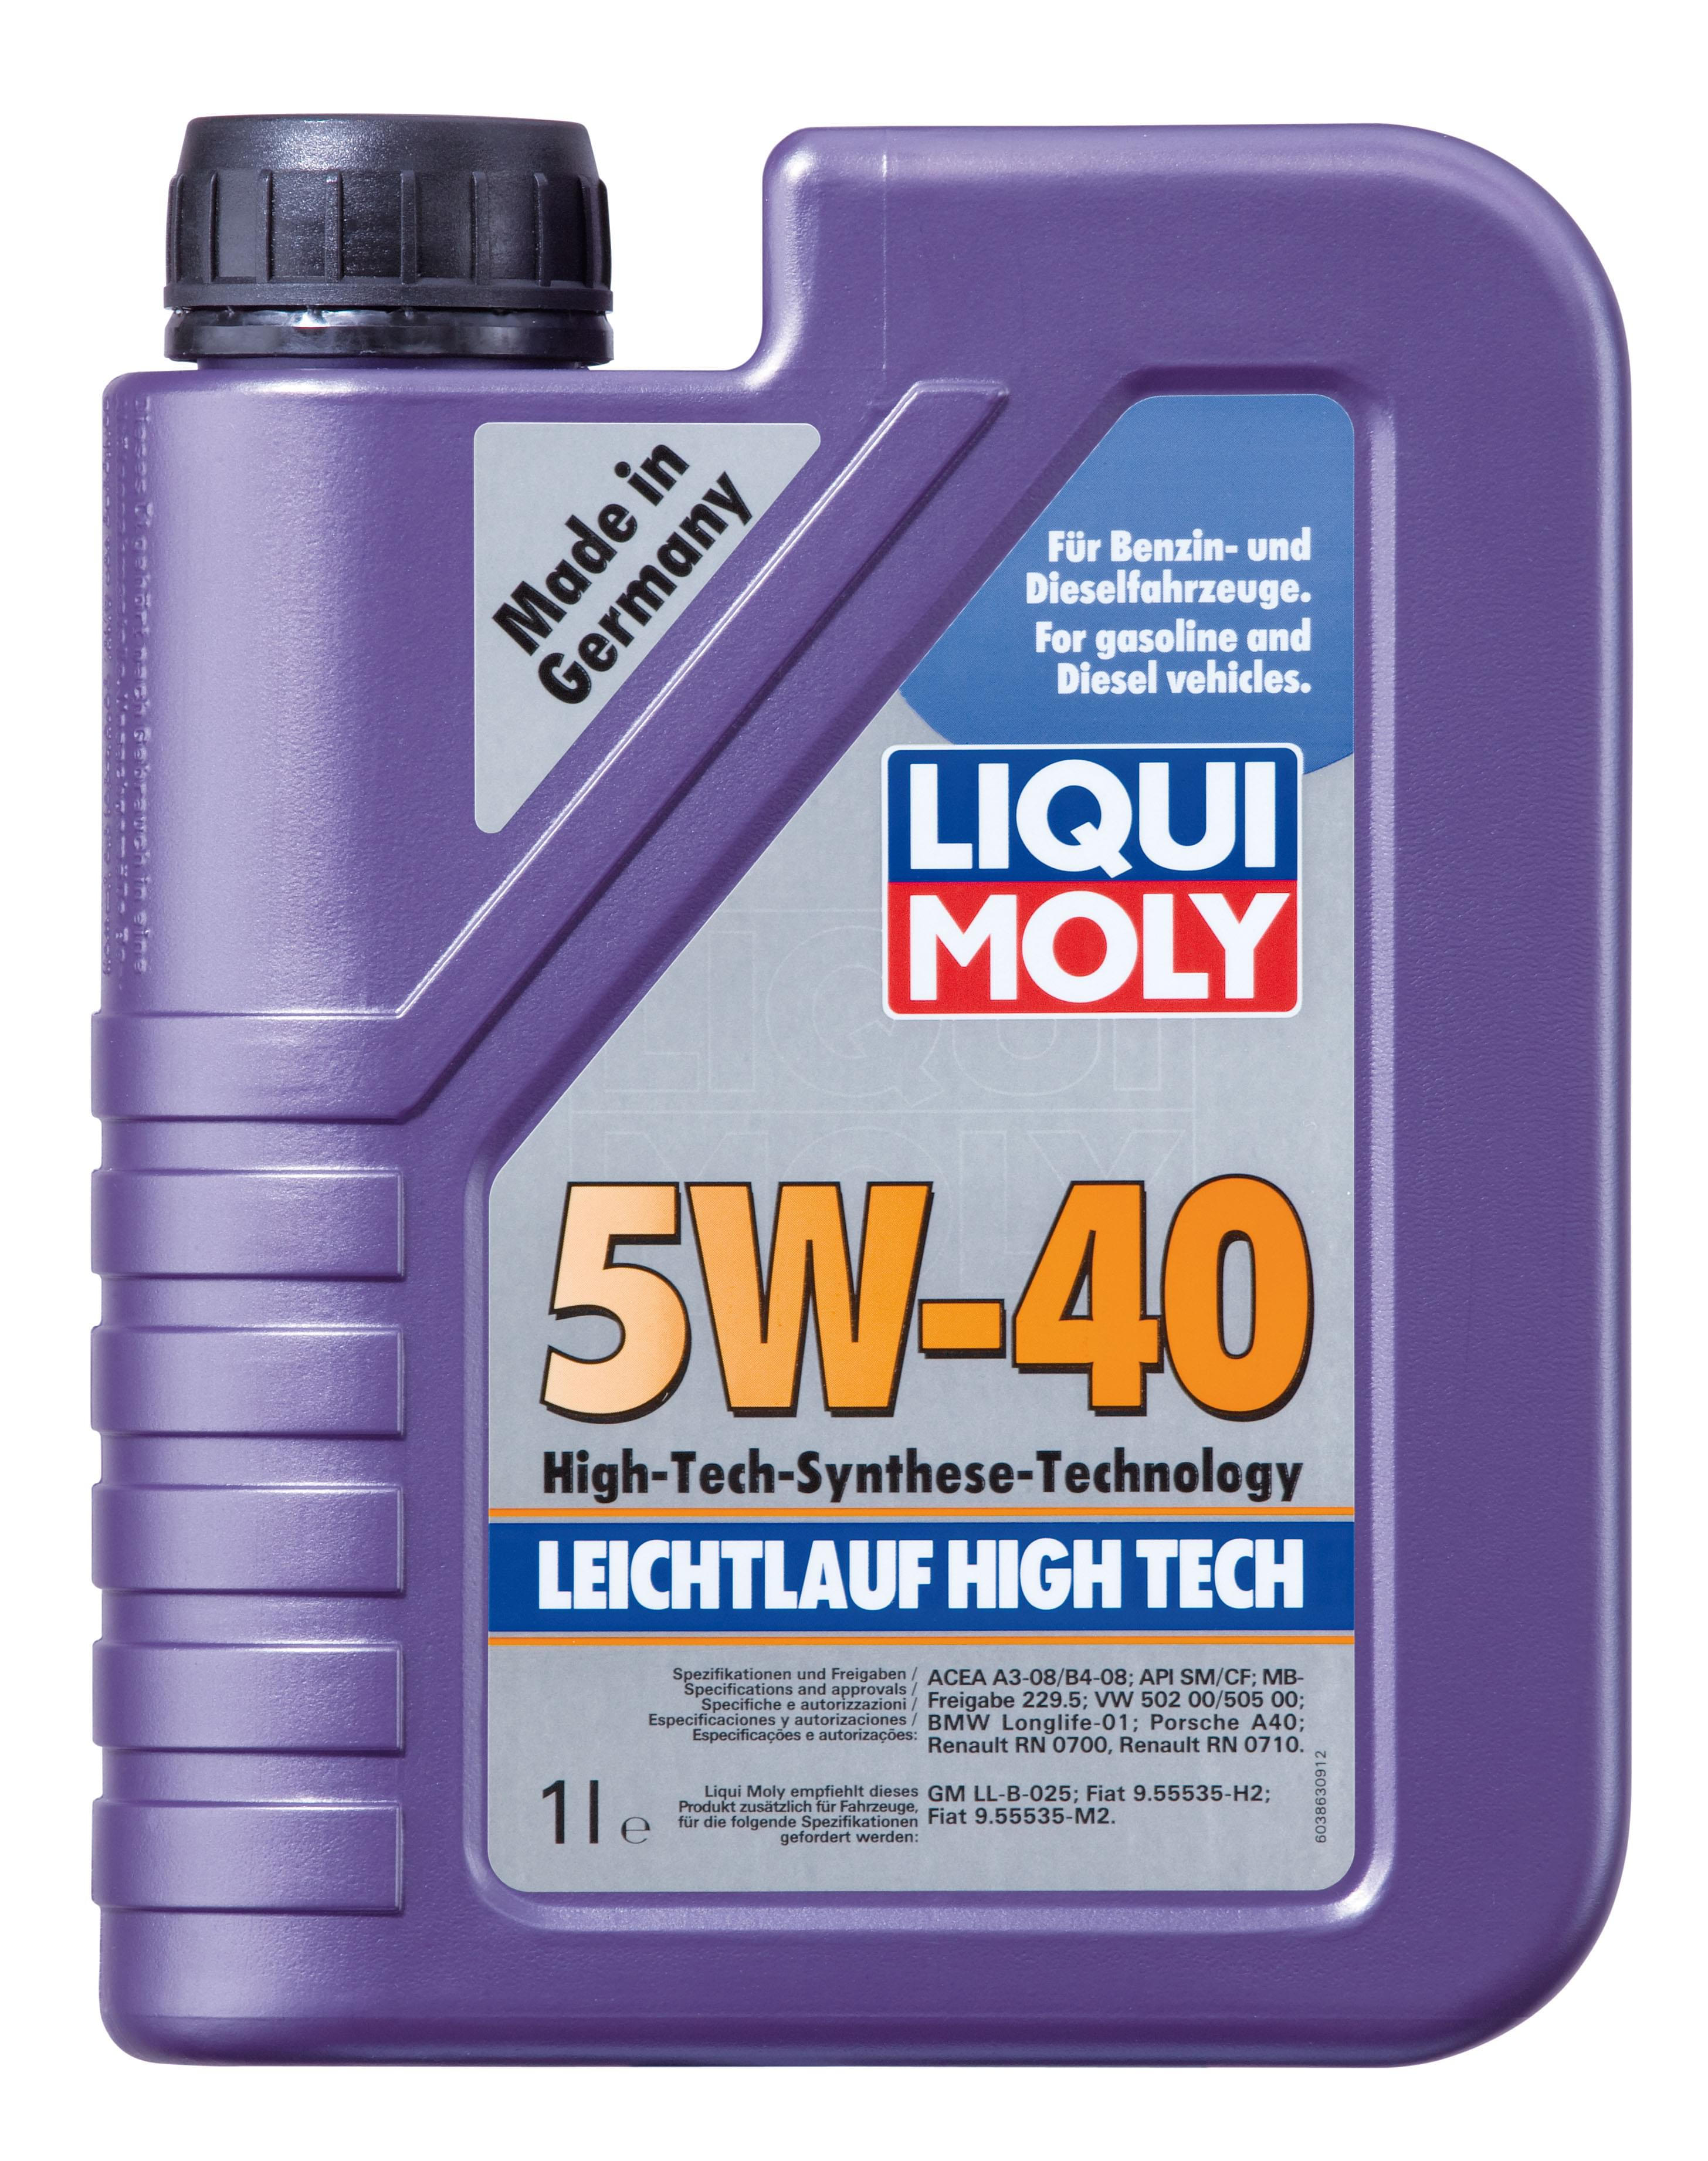 fully synthetic engine oil leichtlauf high tech 5w 40. Black Bedroom Furniture Sets. Home Design Ideas